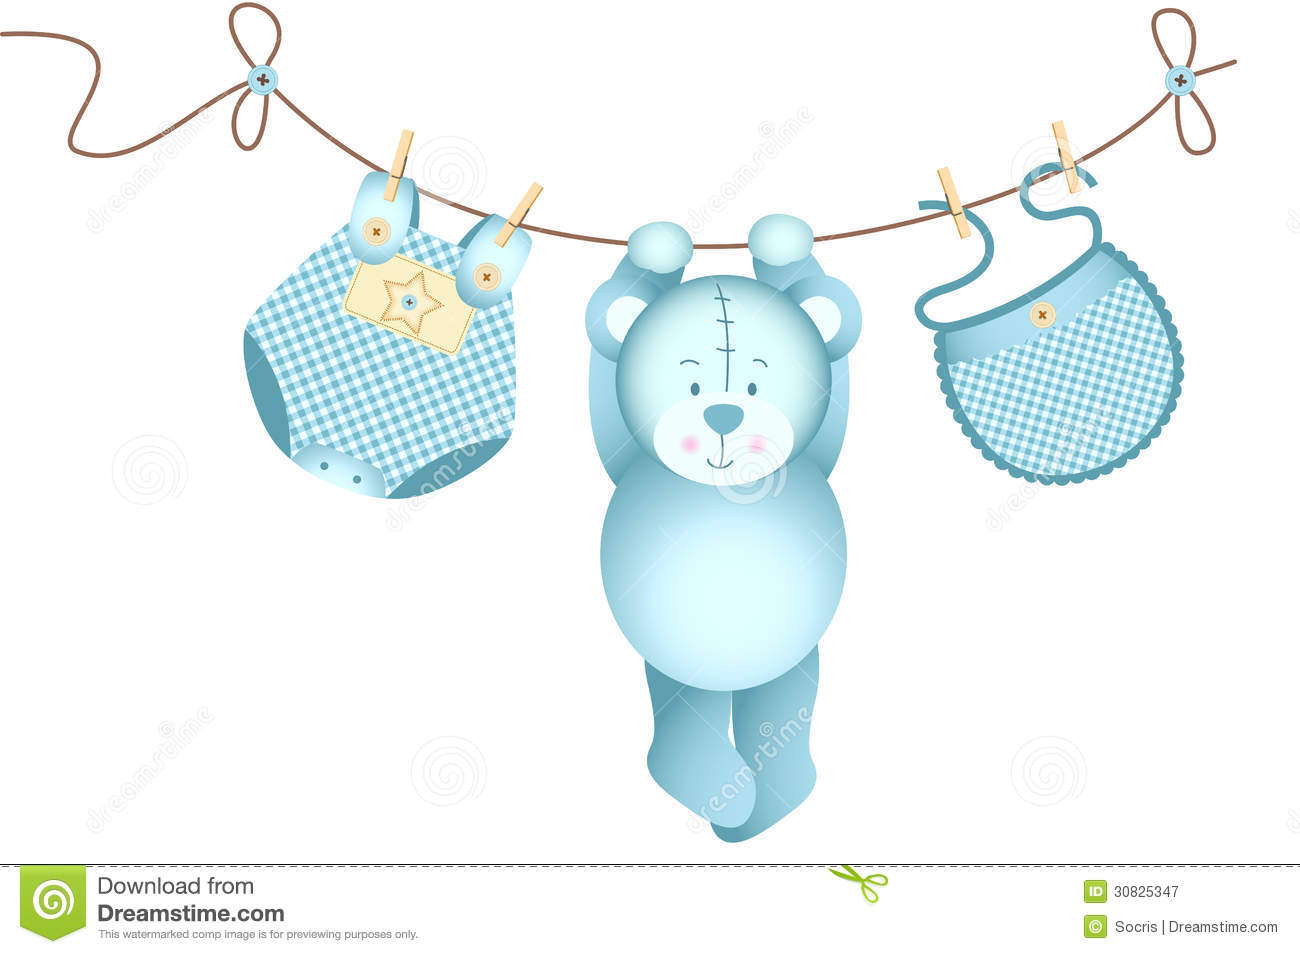 Baby Clothesline Clip Art   Invitation Templates